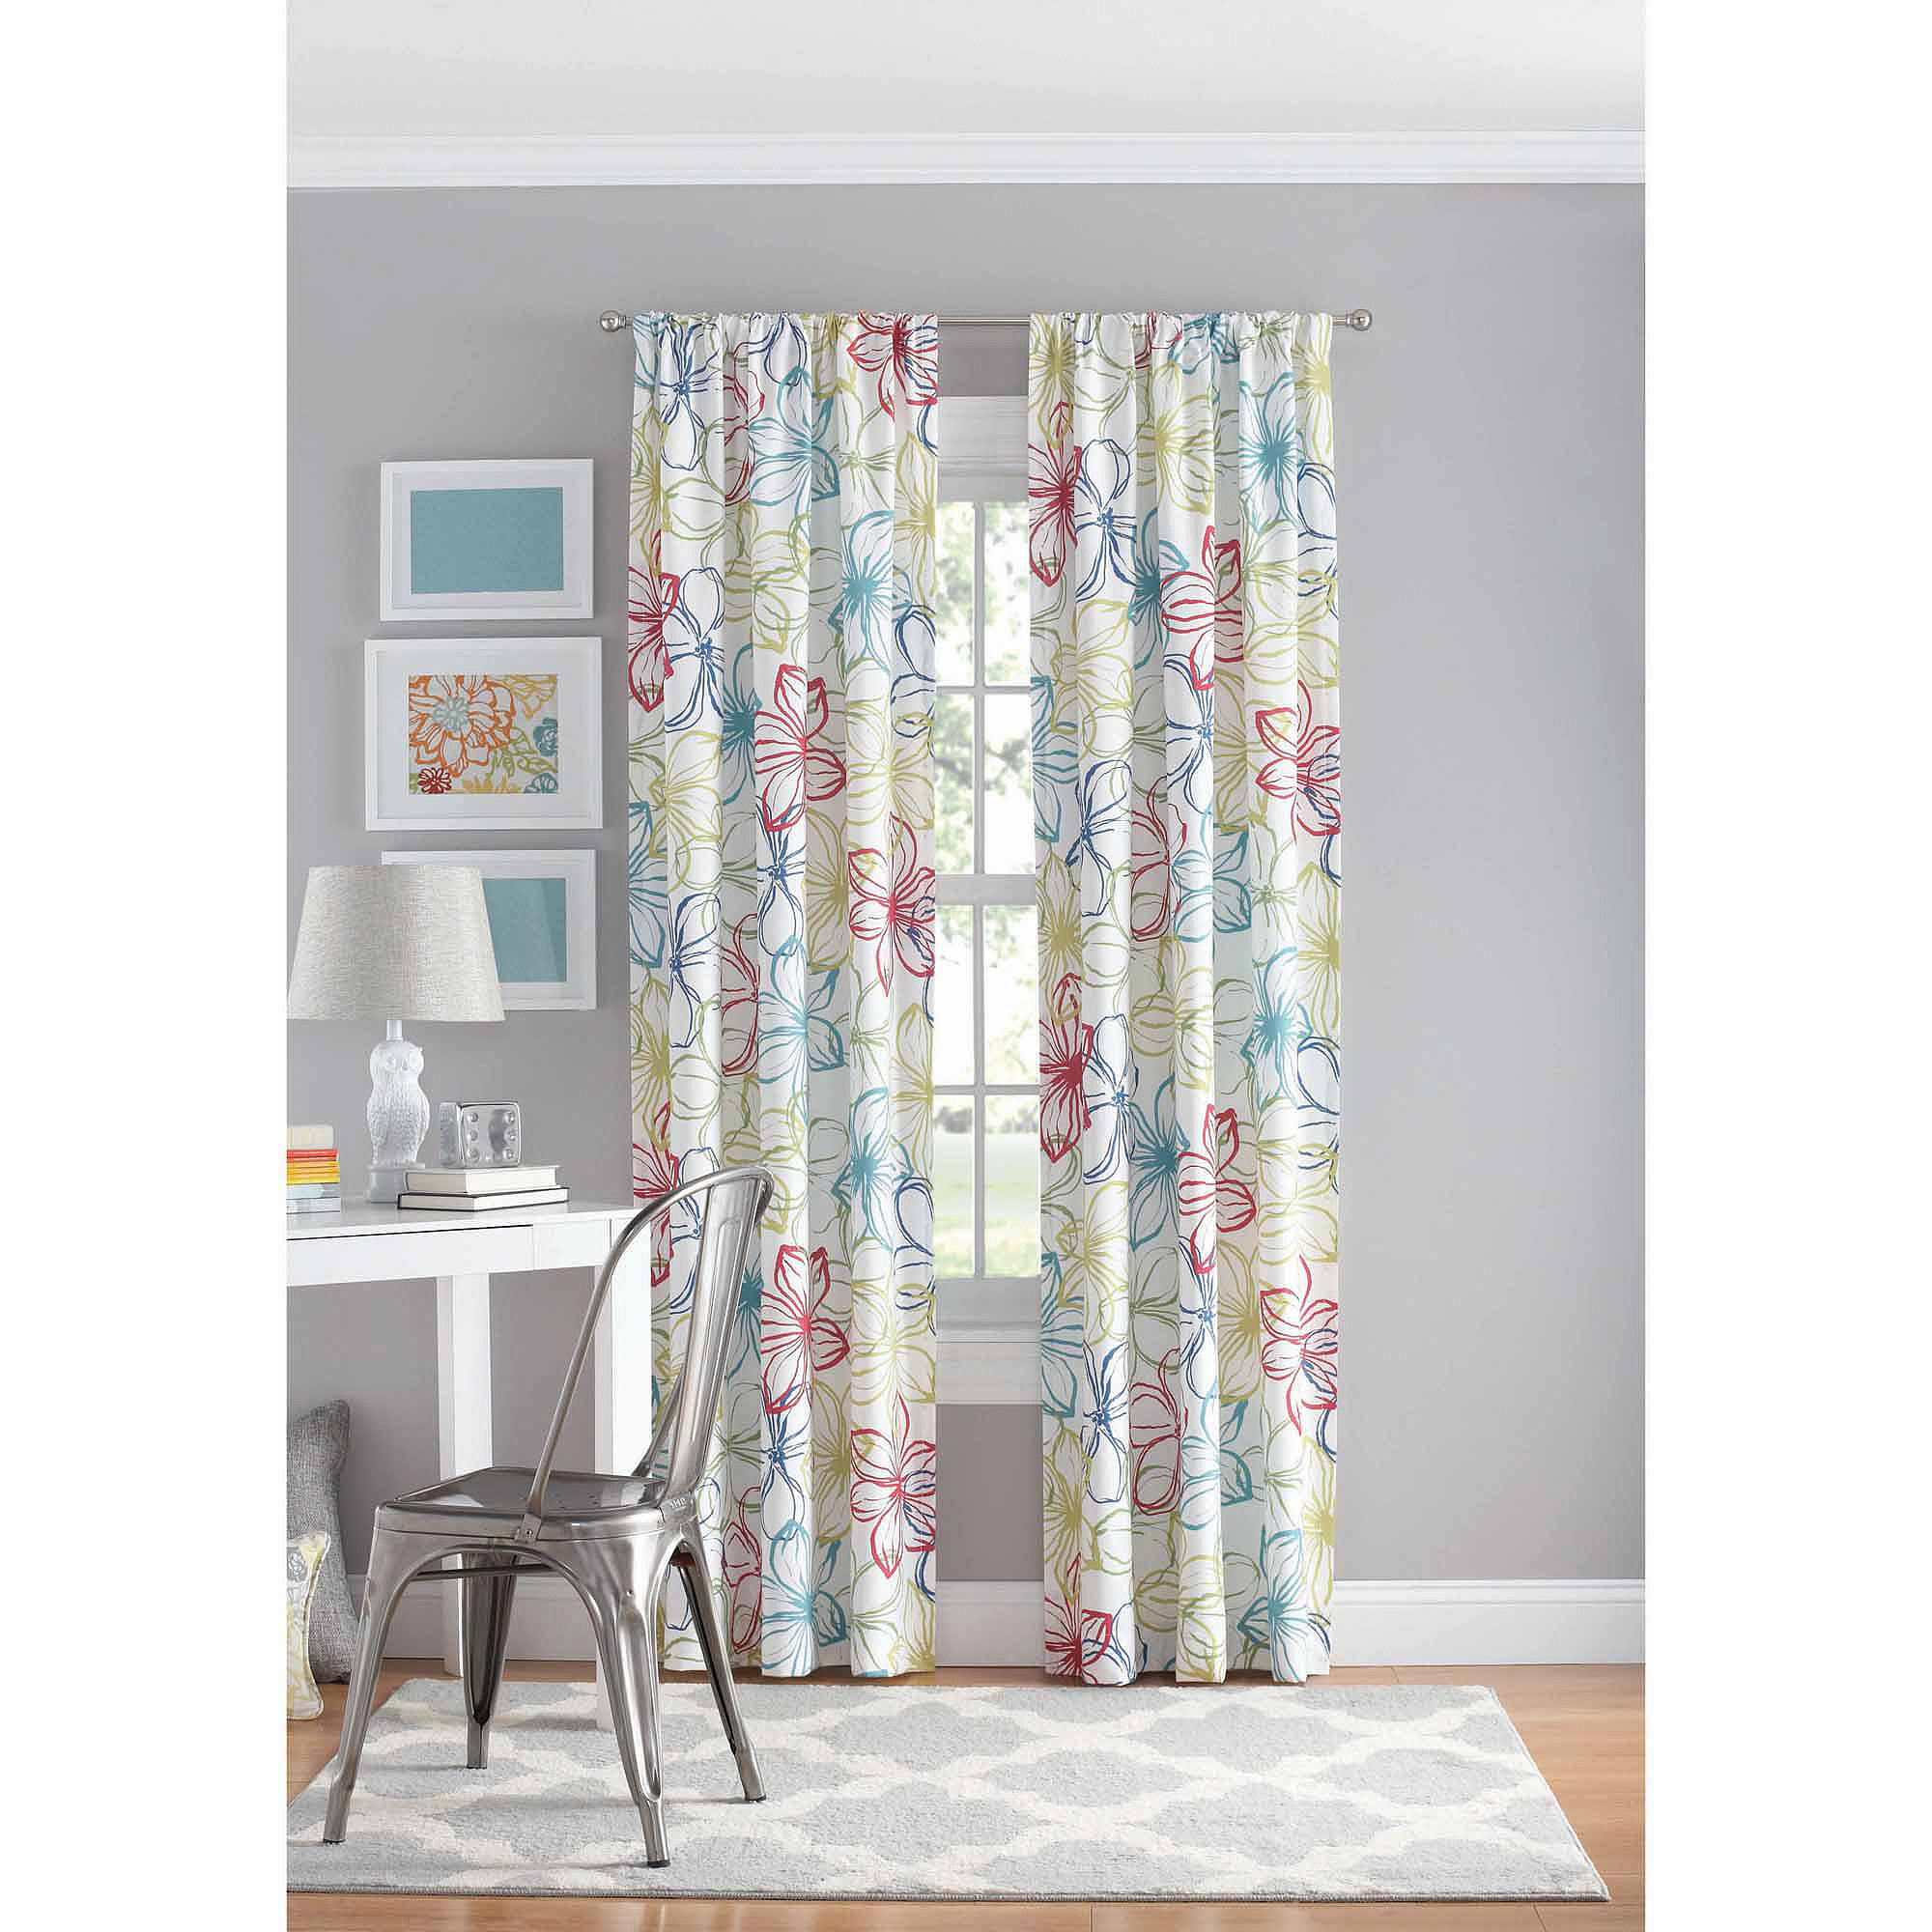 Curtains For Sale At Walmart Walmart Bedroom Curtains Techplacement Store Techplacement Store